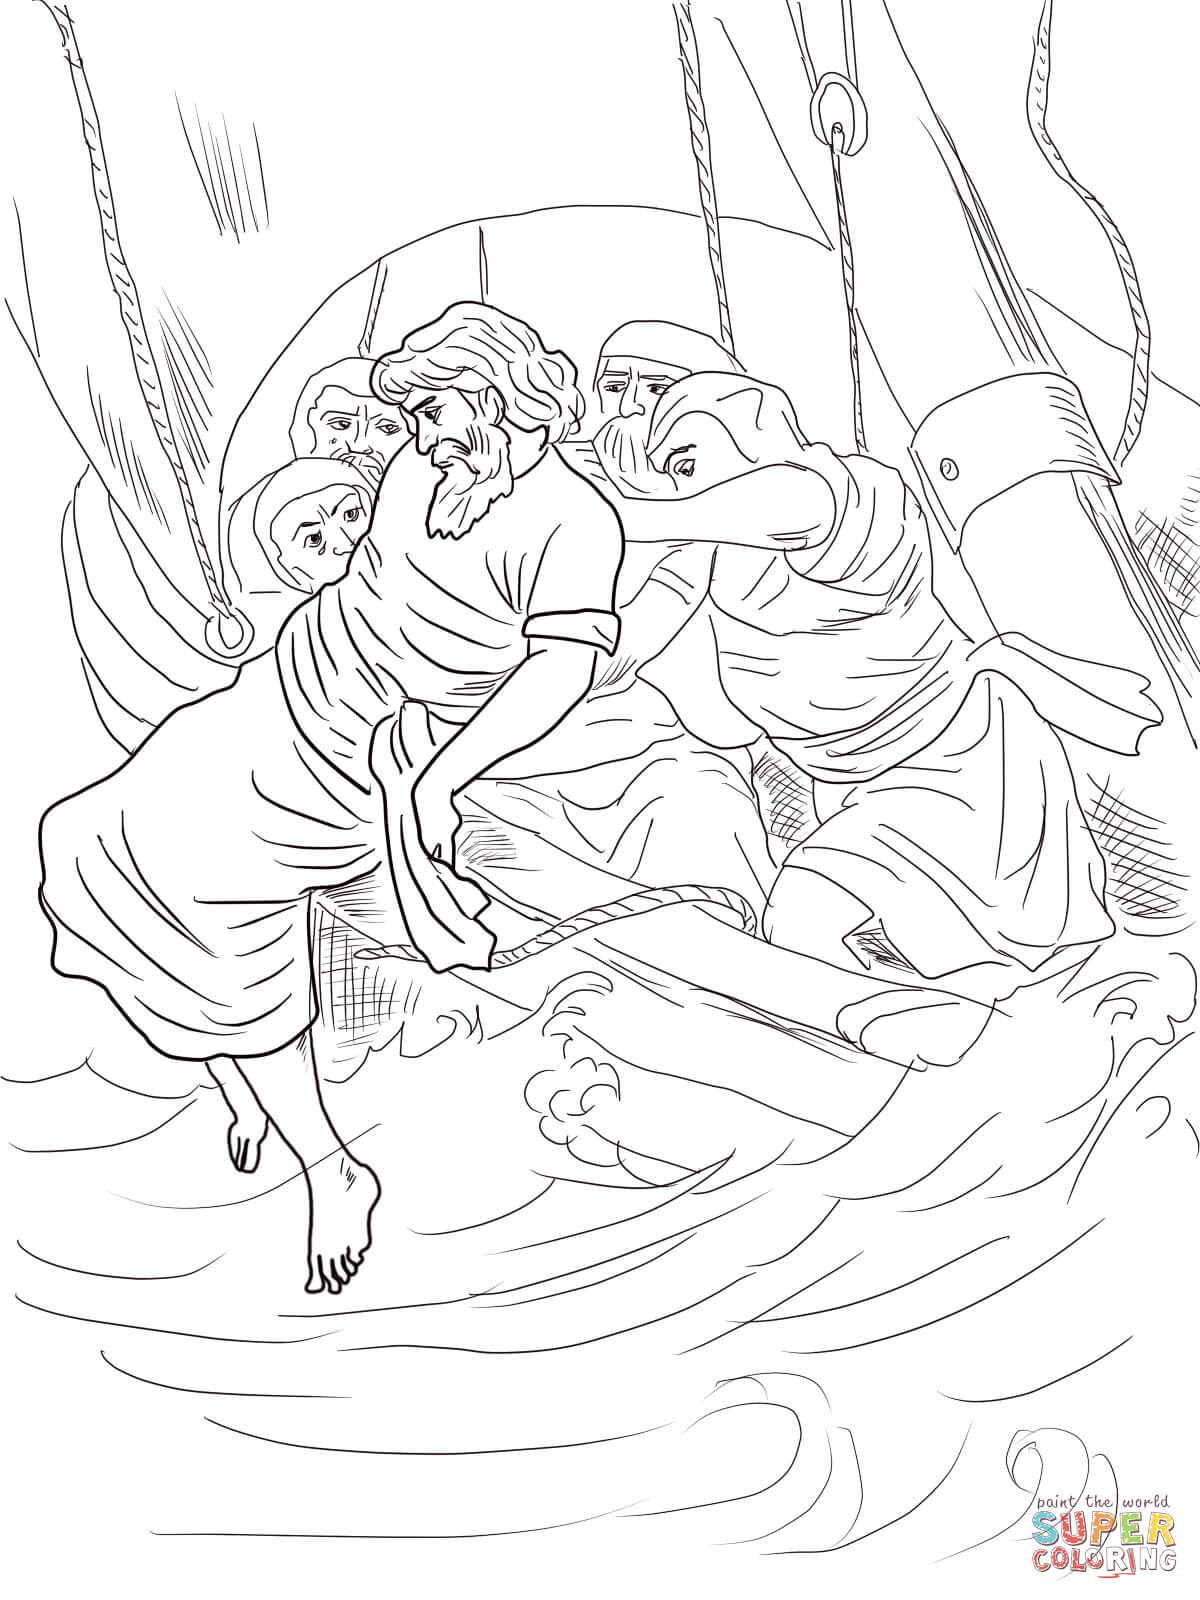 Jonah Thrown Overboard Coloring Page